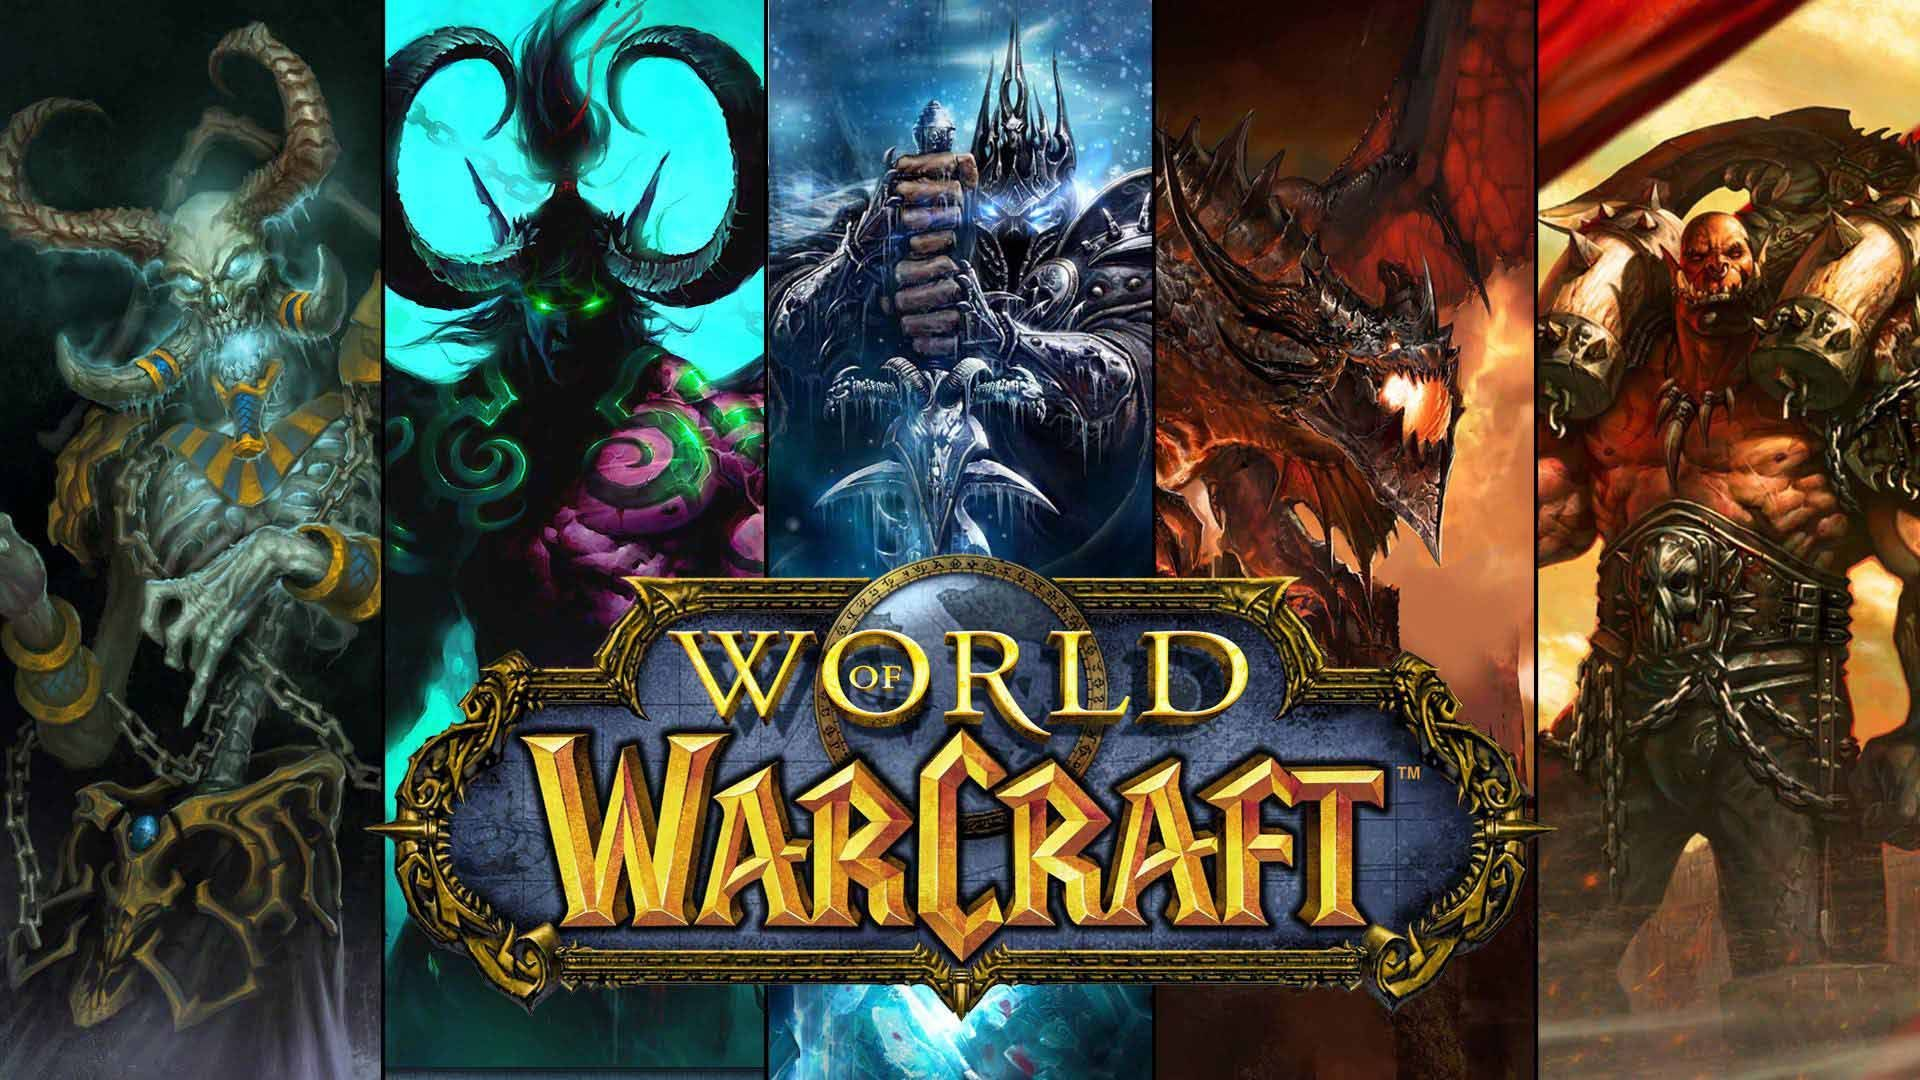 98e390ca12360b83dd52fd339a19fc10 - How To Get Into A Private Server On Wow